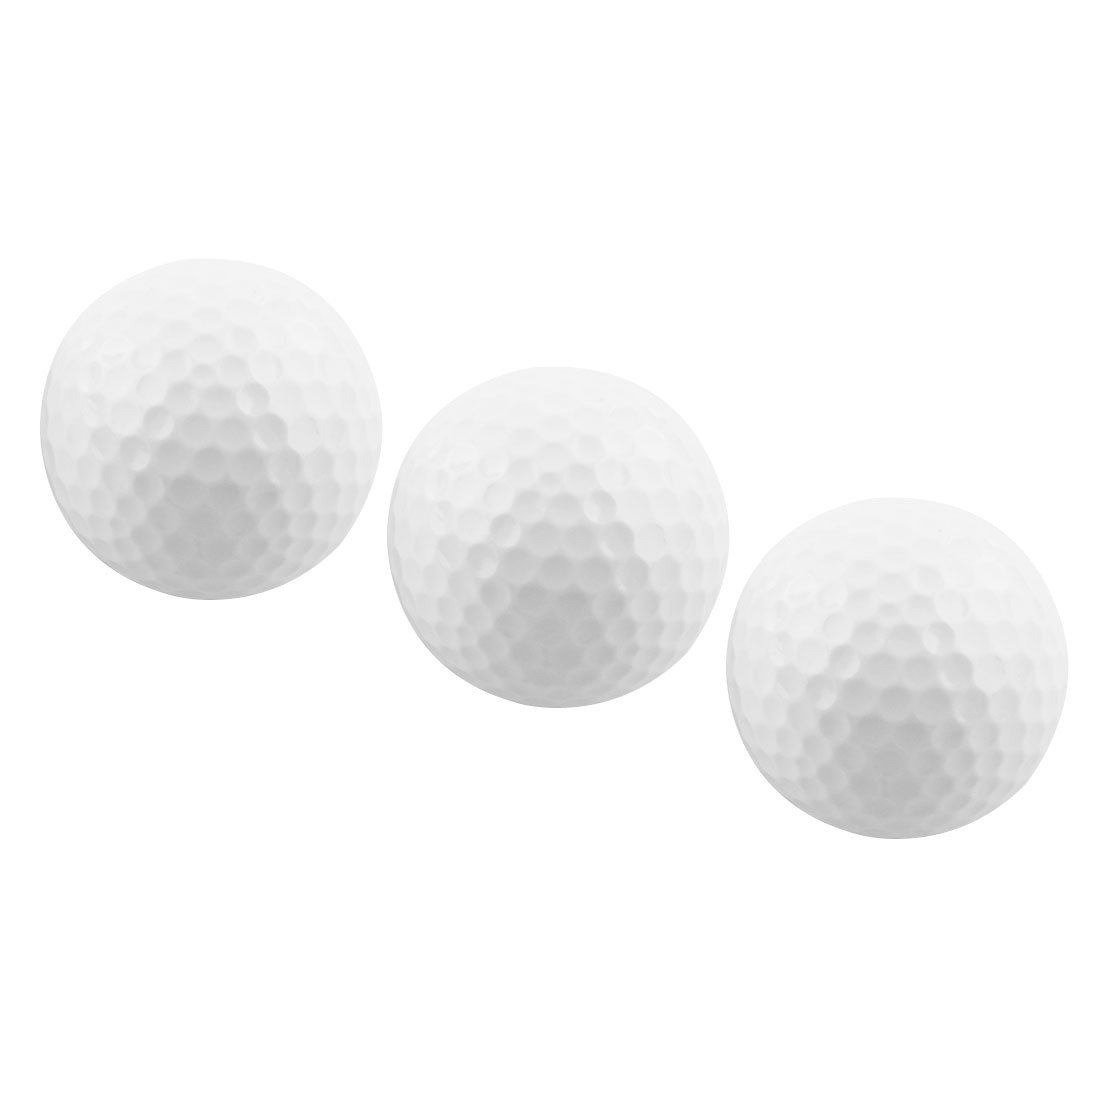 Outdoor Sports Resin Training Practice Golf Ball White 3 Pcs